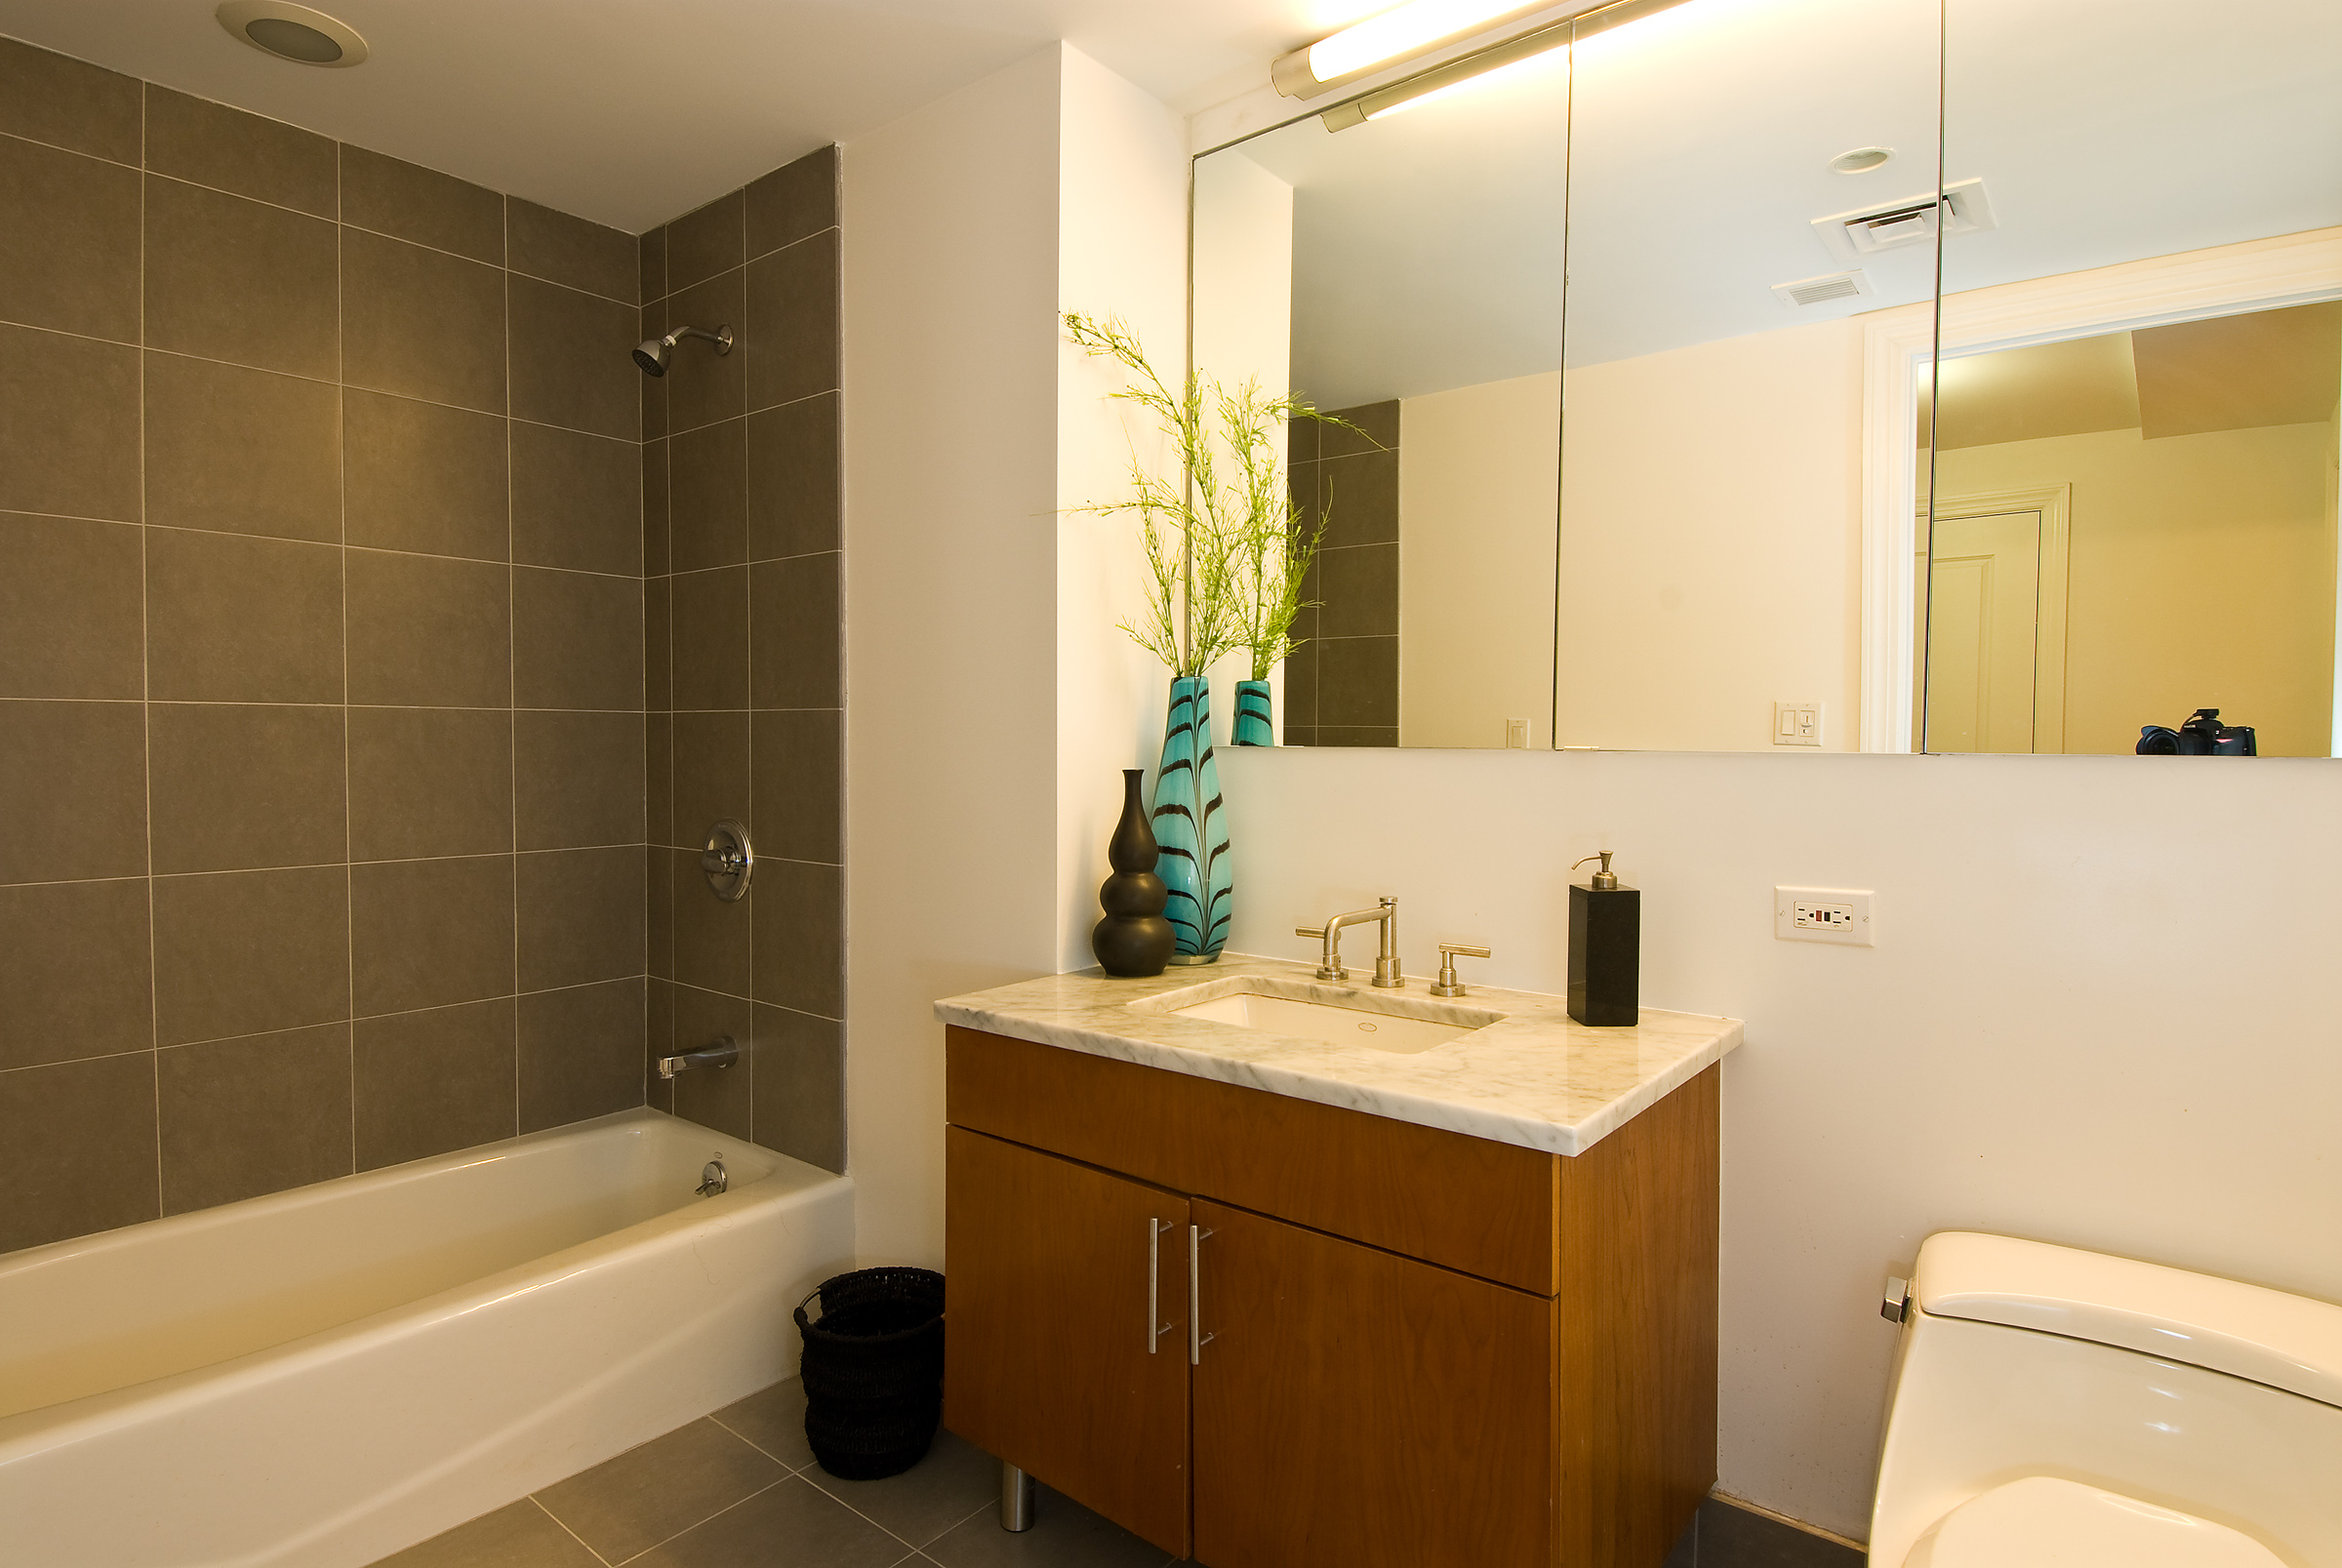 Delighful Cost Bathroom Remodel Average Costbathroom Renovation